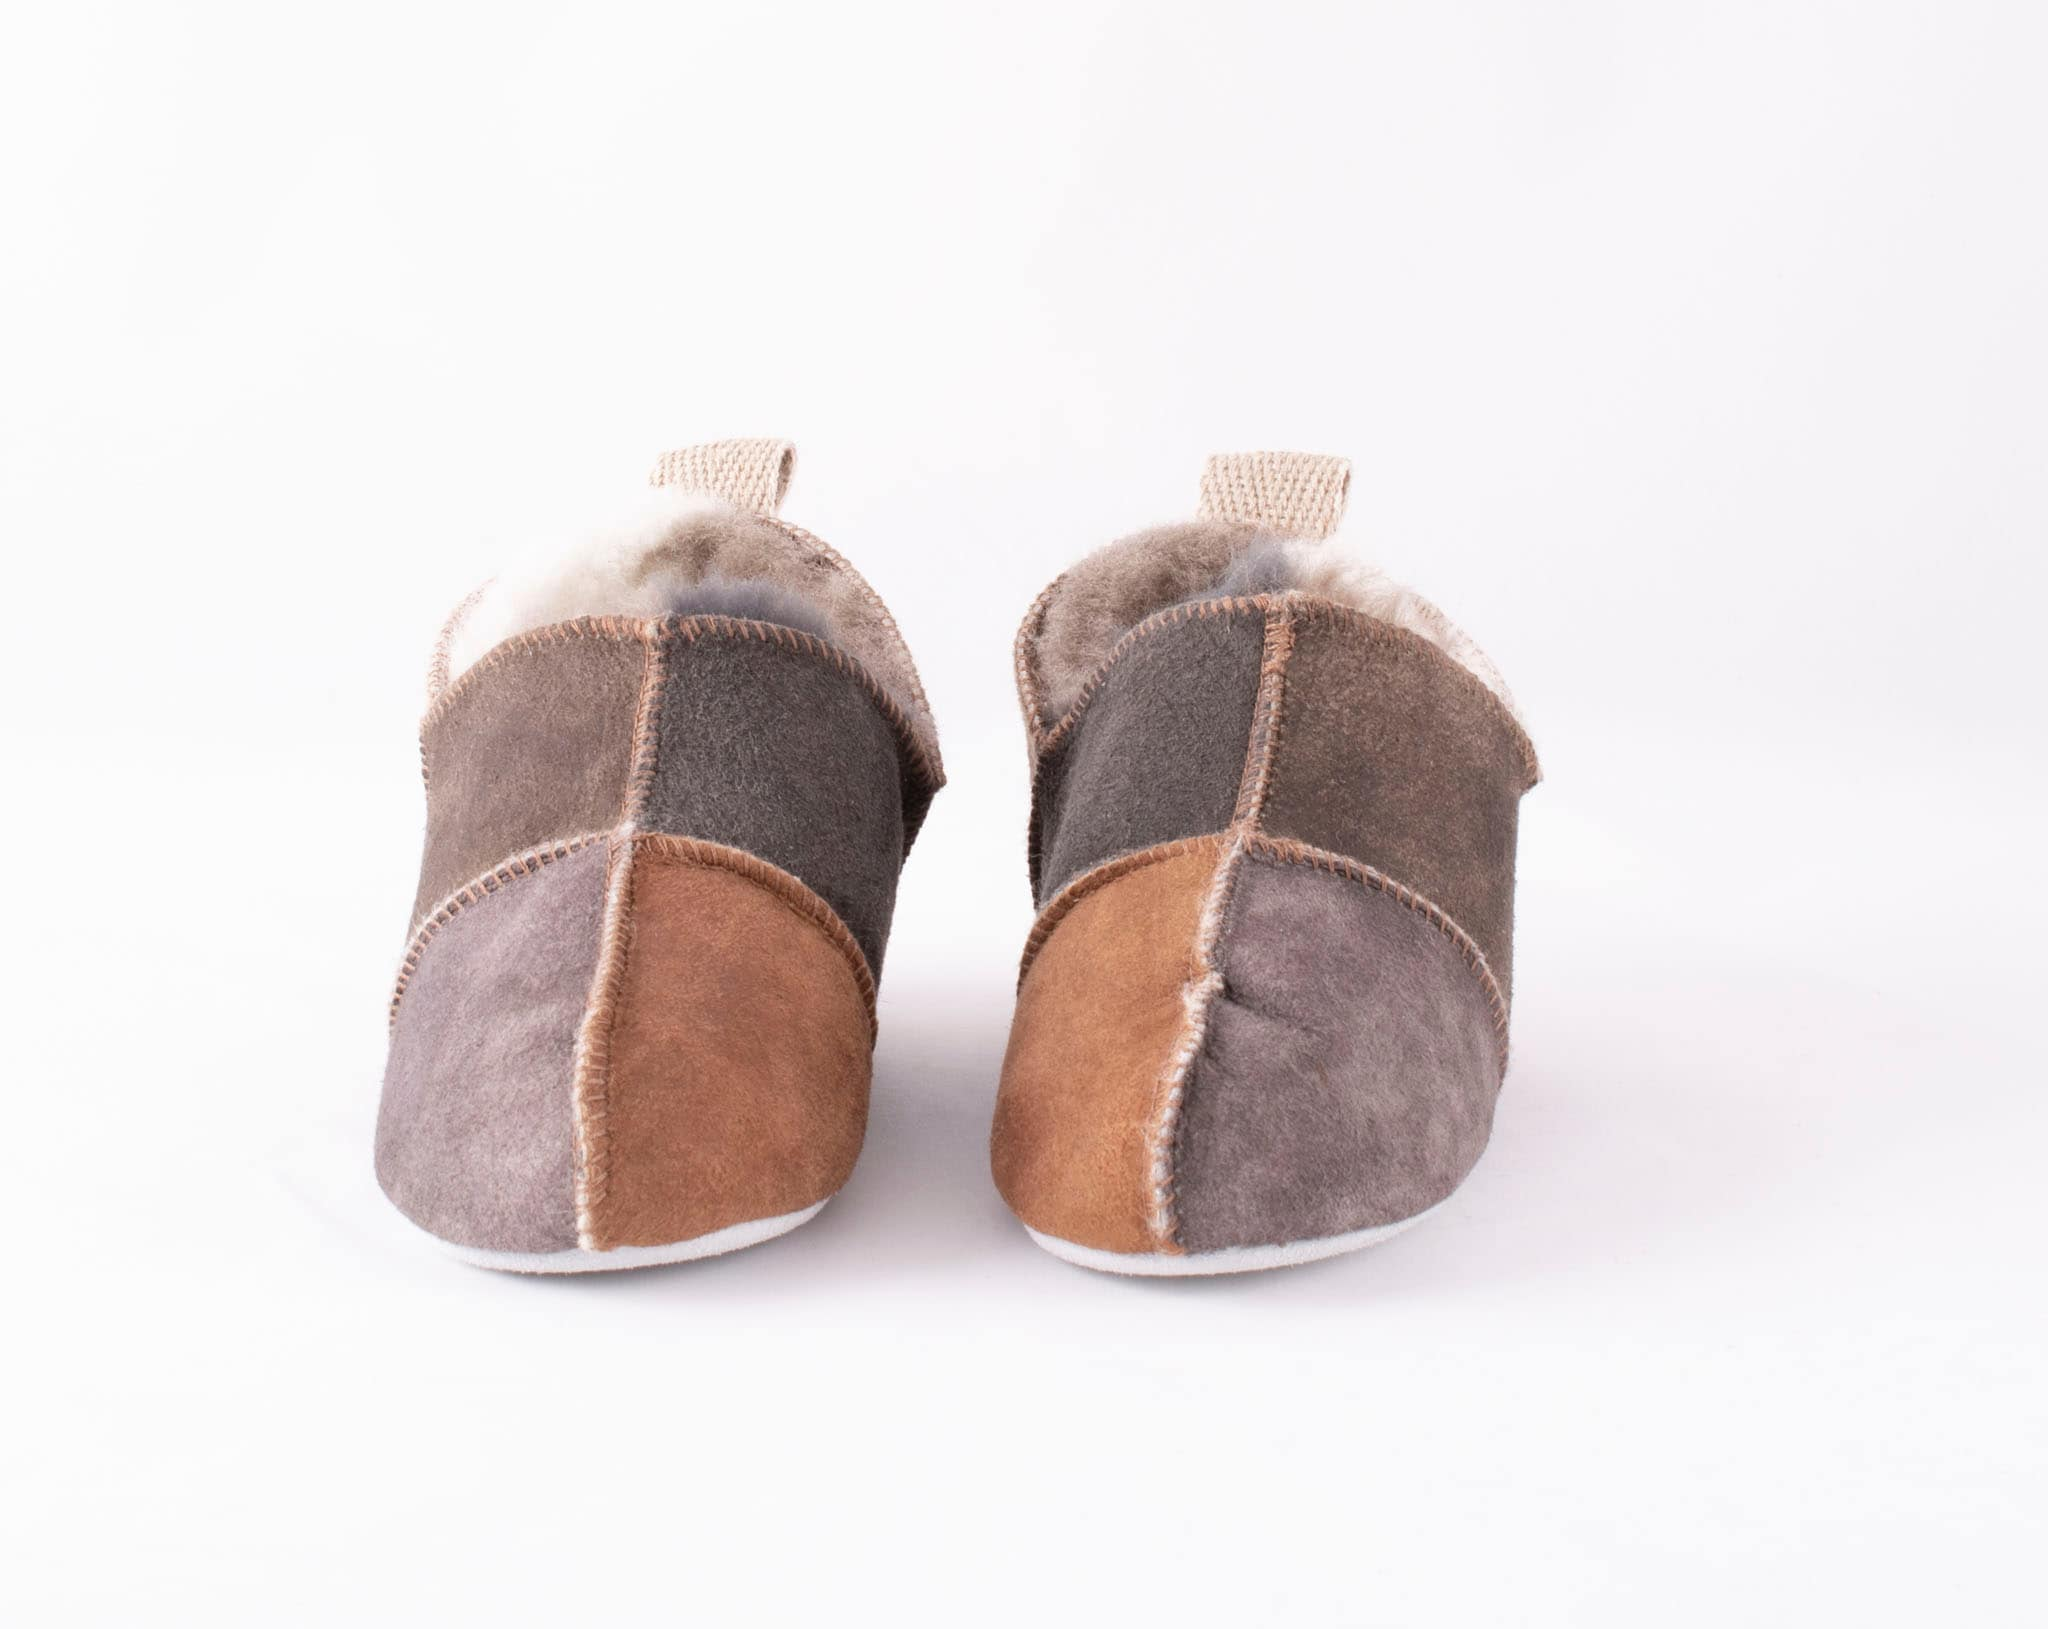 Nol slippers in patchwork Multicolored